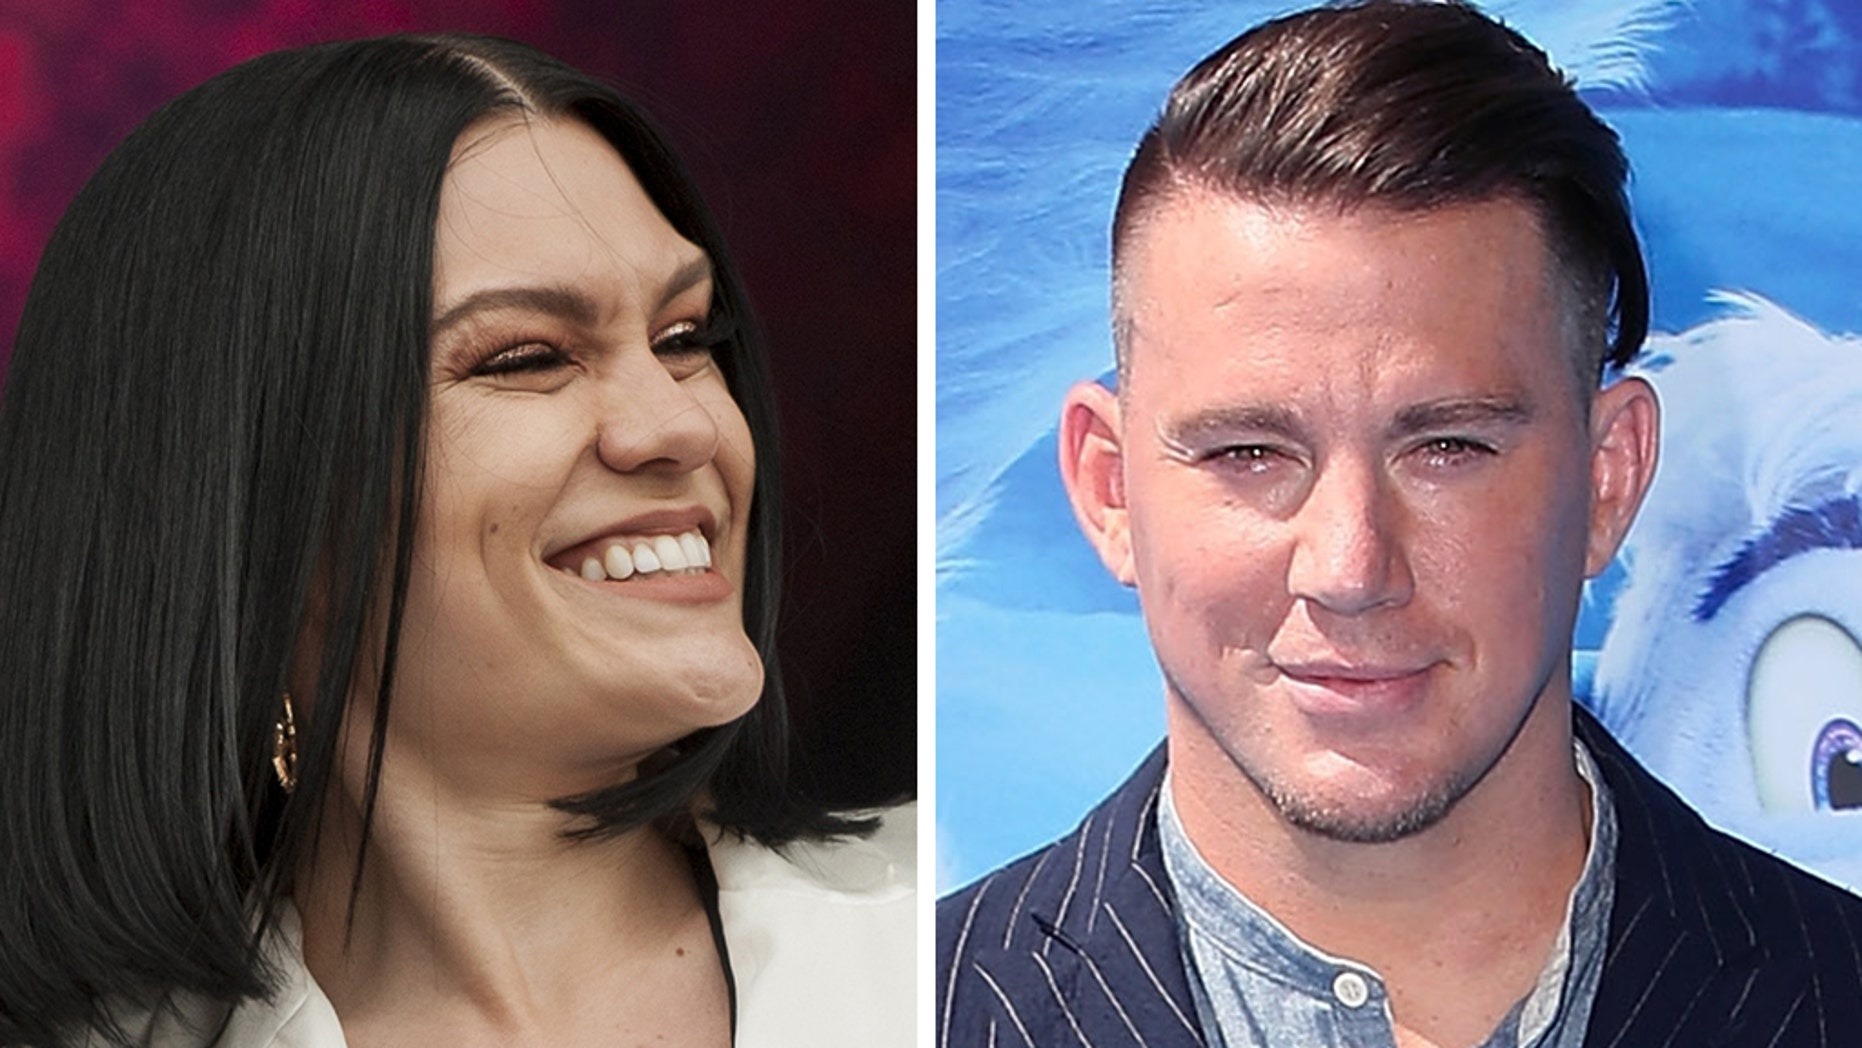 Channing Tatum Is Dating Singer Jessie J Following Jenna Dewan Split